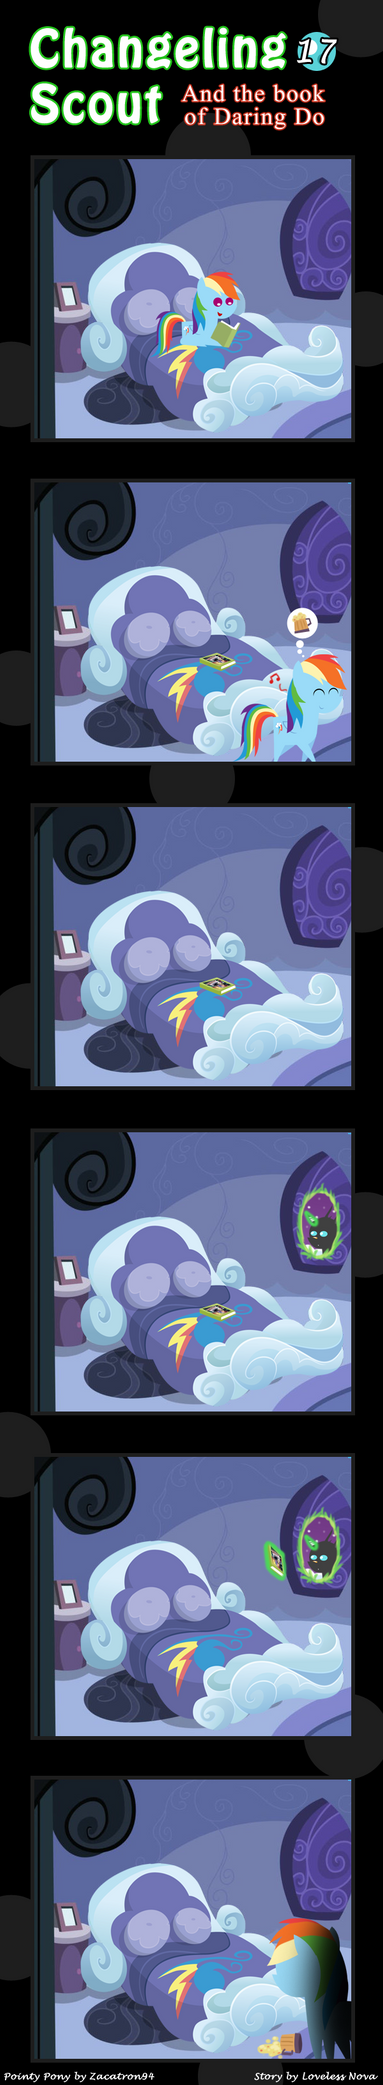 Changeling Scout And The Book Of Daring Do 17 by vavacung